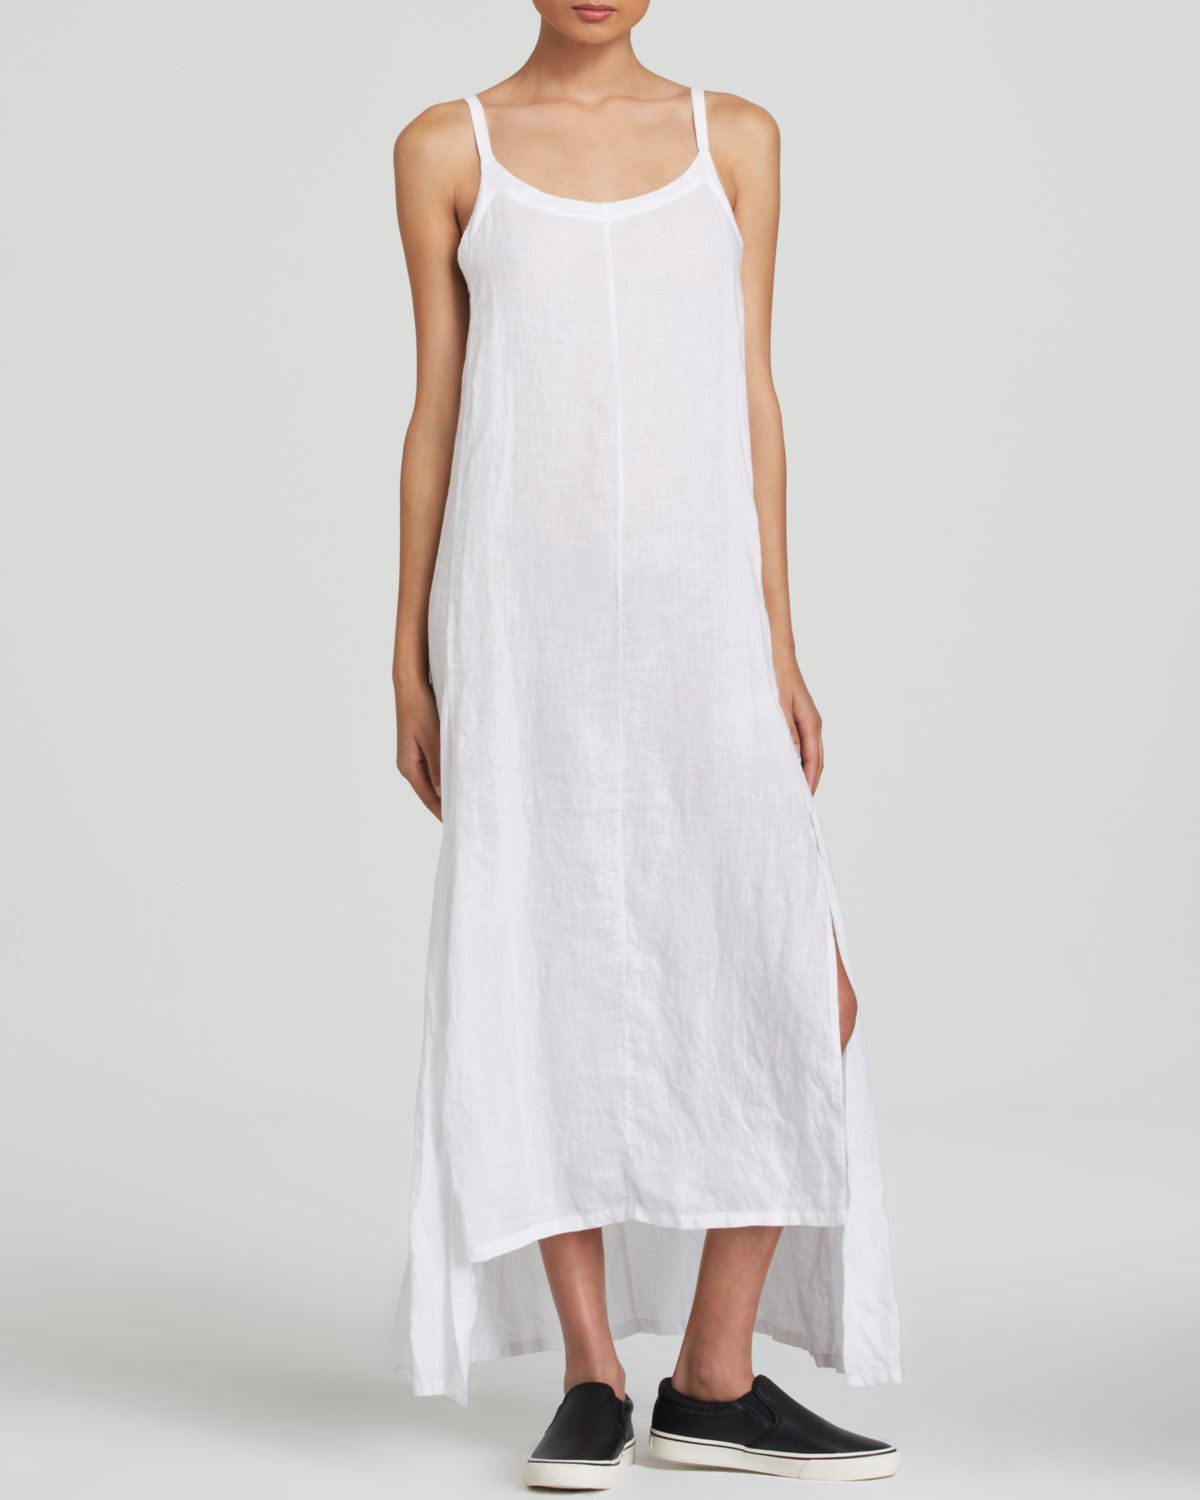 3e26978e4f8 Gallery. Previously sold at  Bloomingdale s · Women s White Linen Dresses  ...